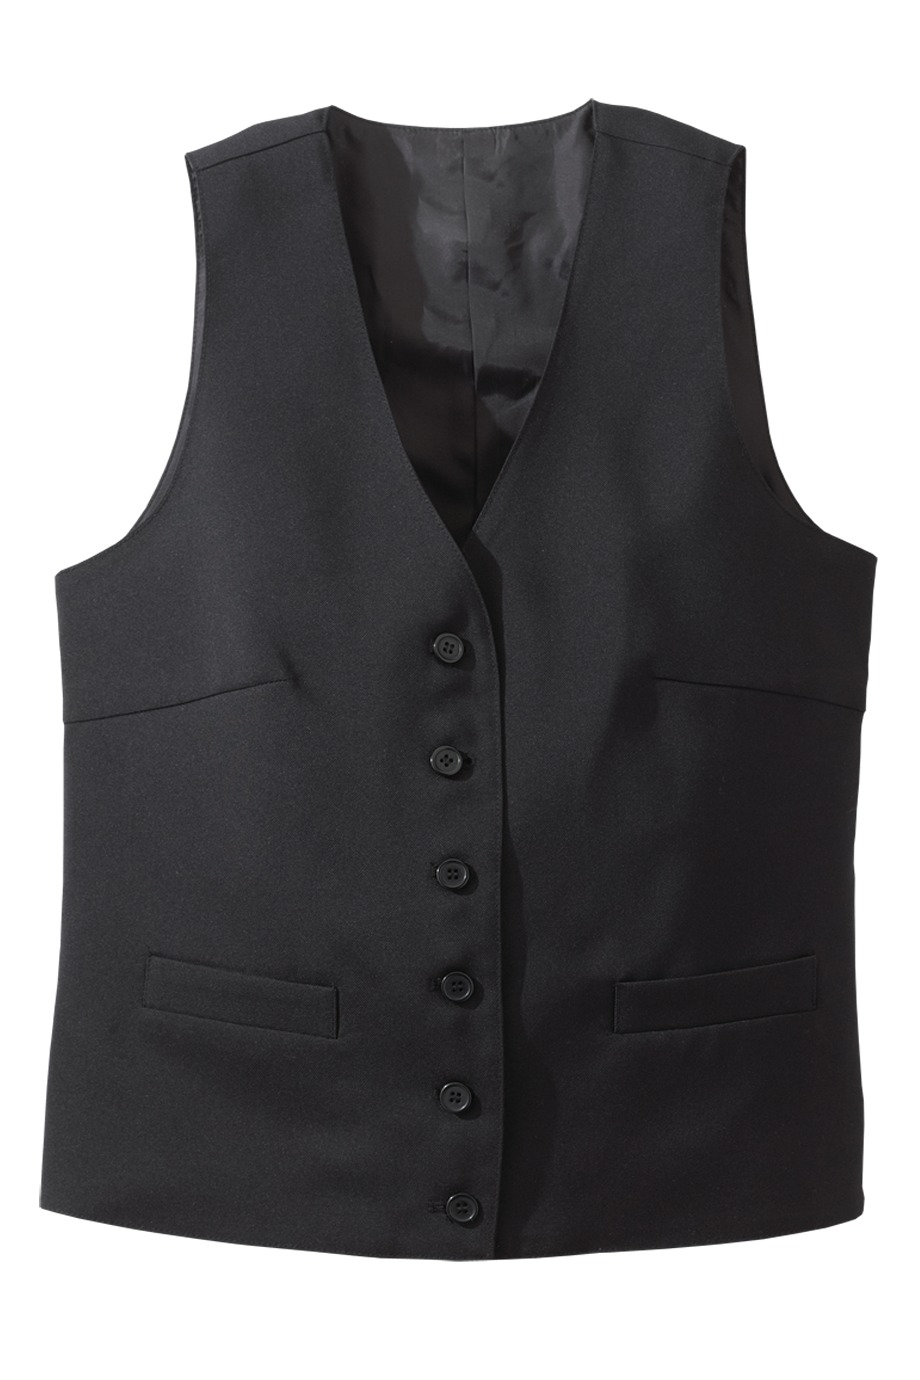 Edwards Garment 7550 - Women's Firenza Vest